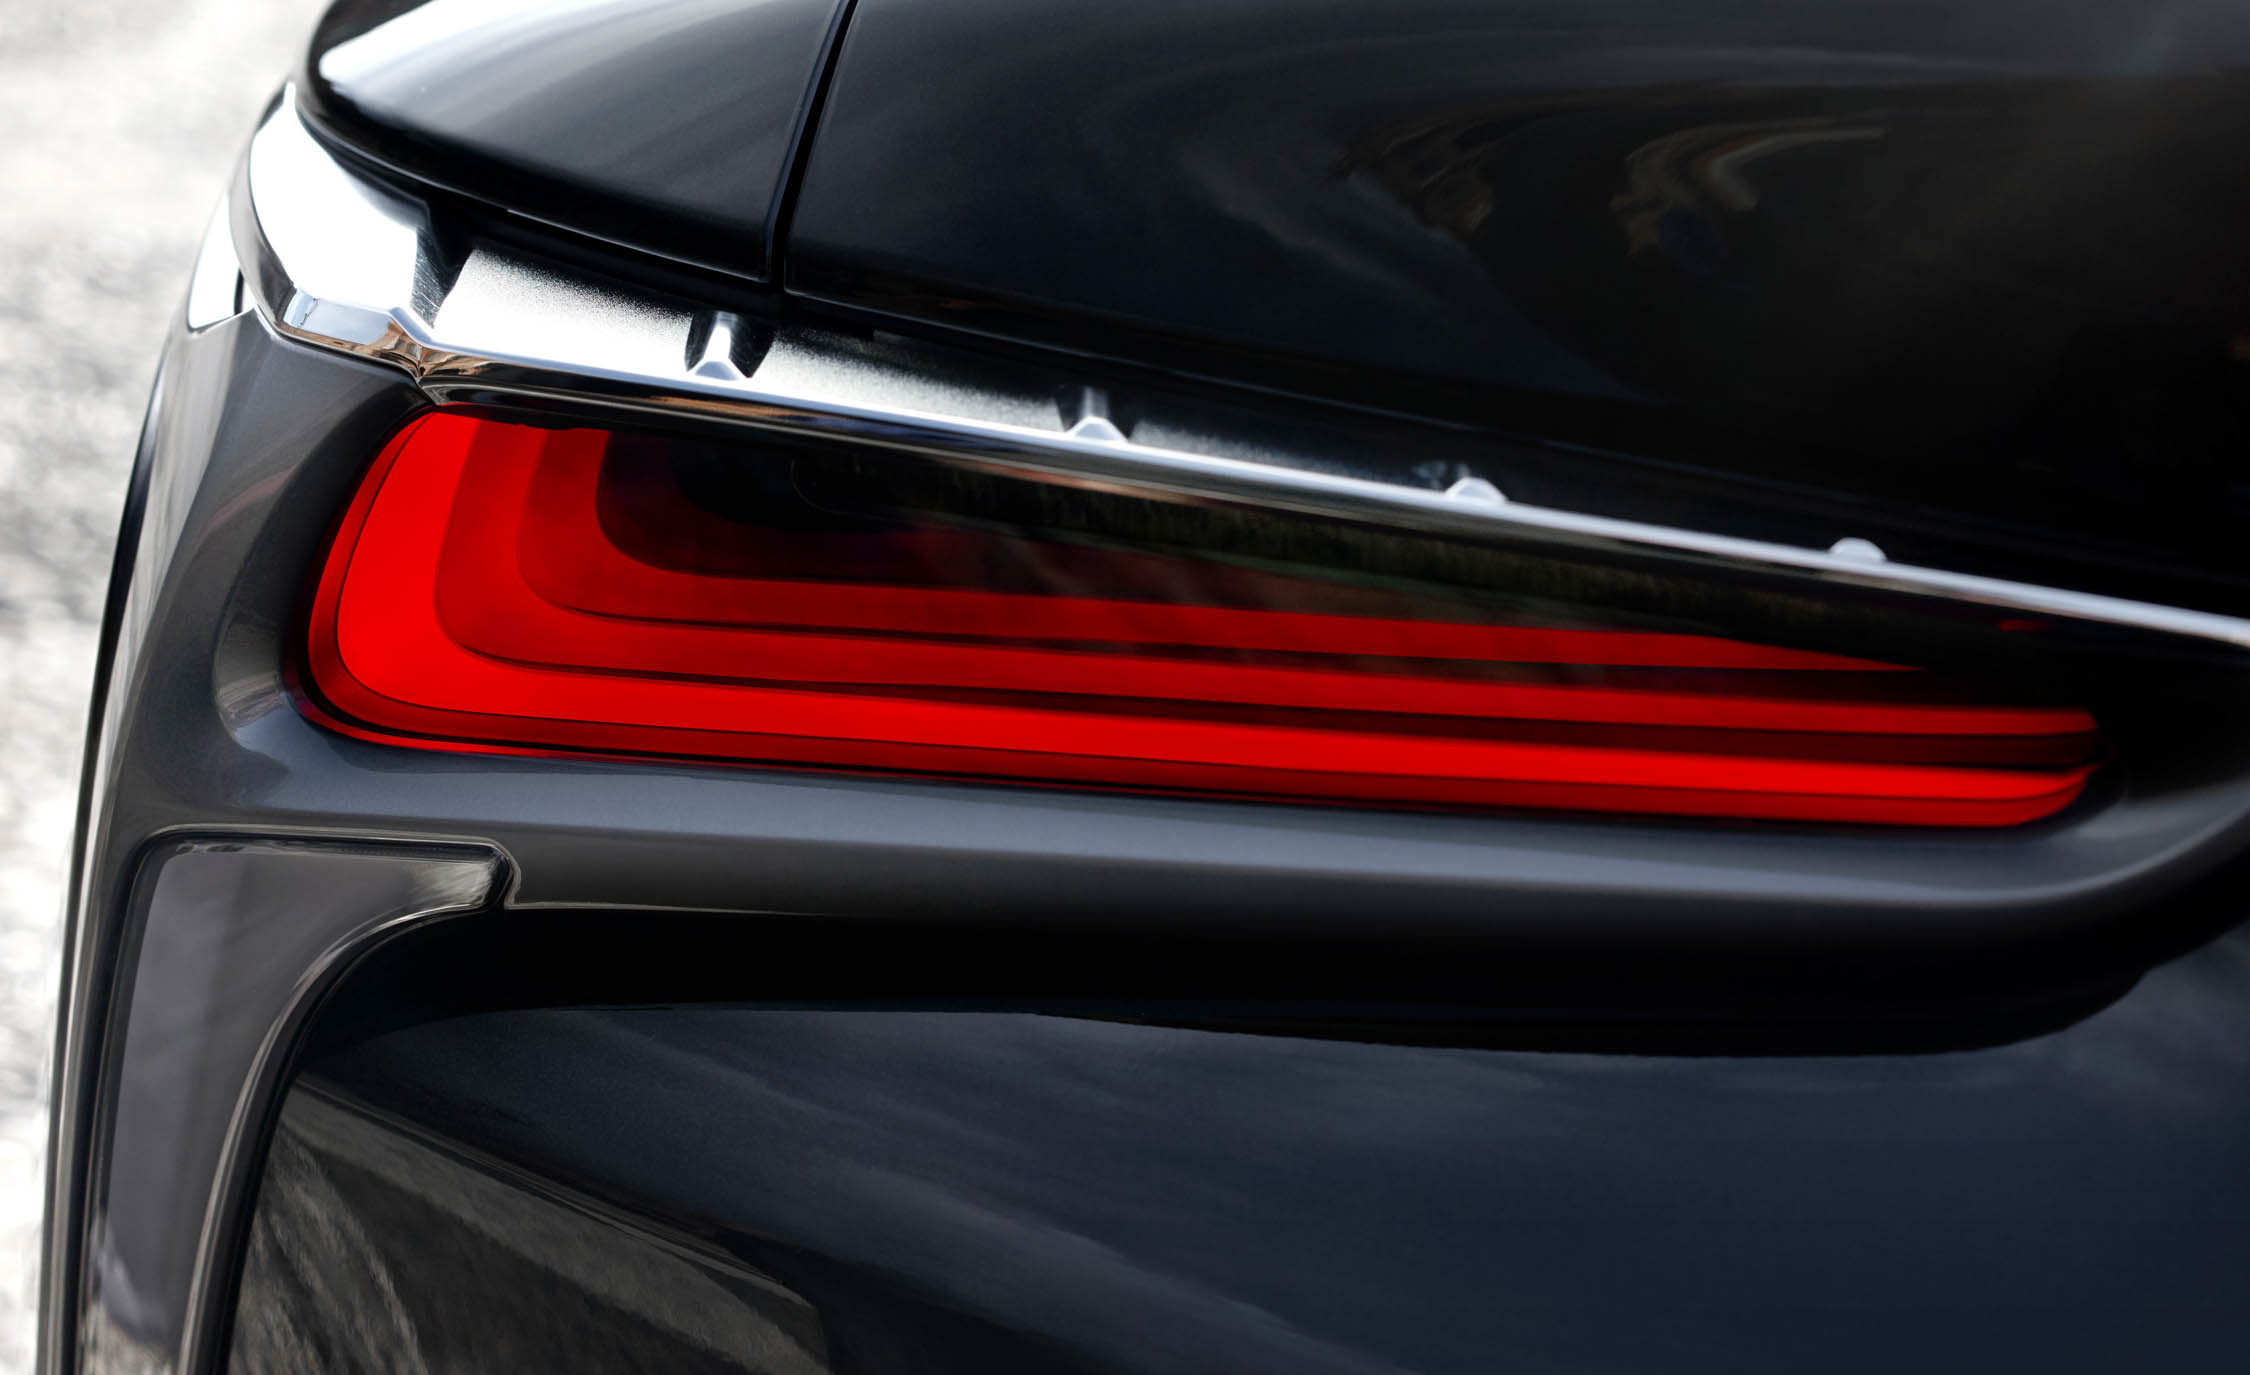 2018 Lexus Lc 500h Exterior View Taillight (Photo 52 of 84)